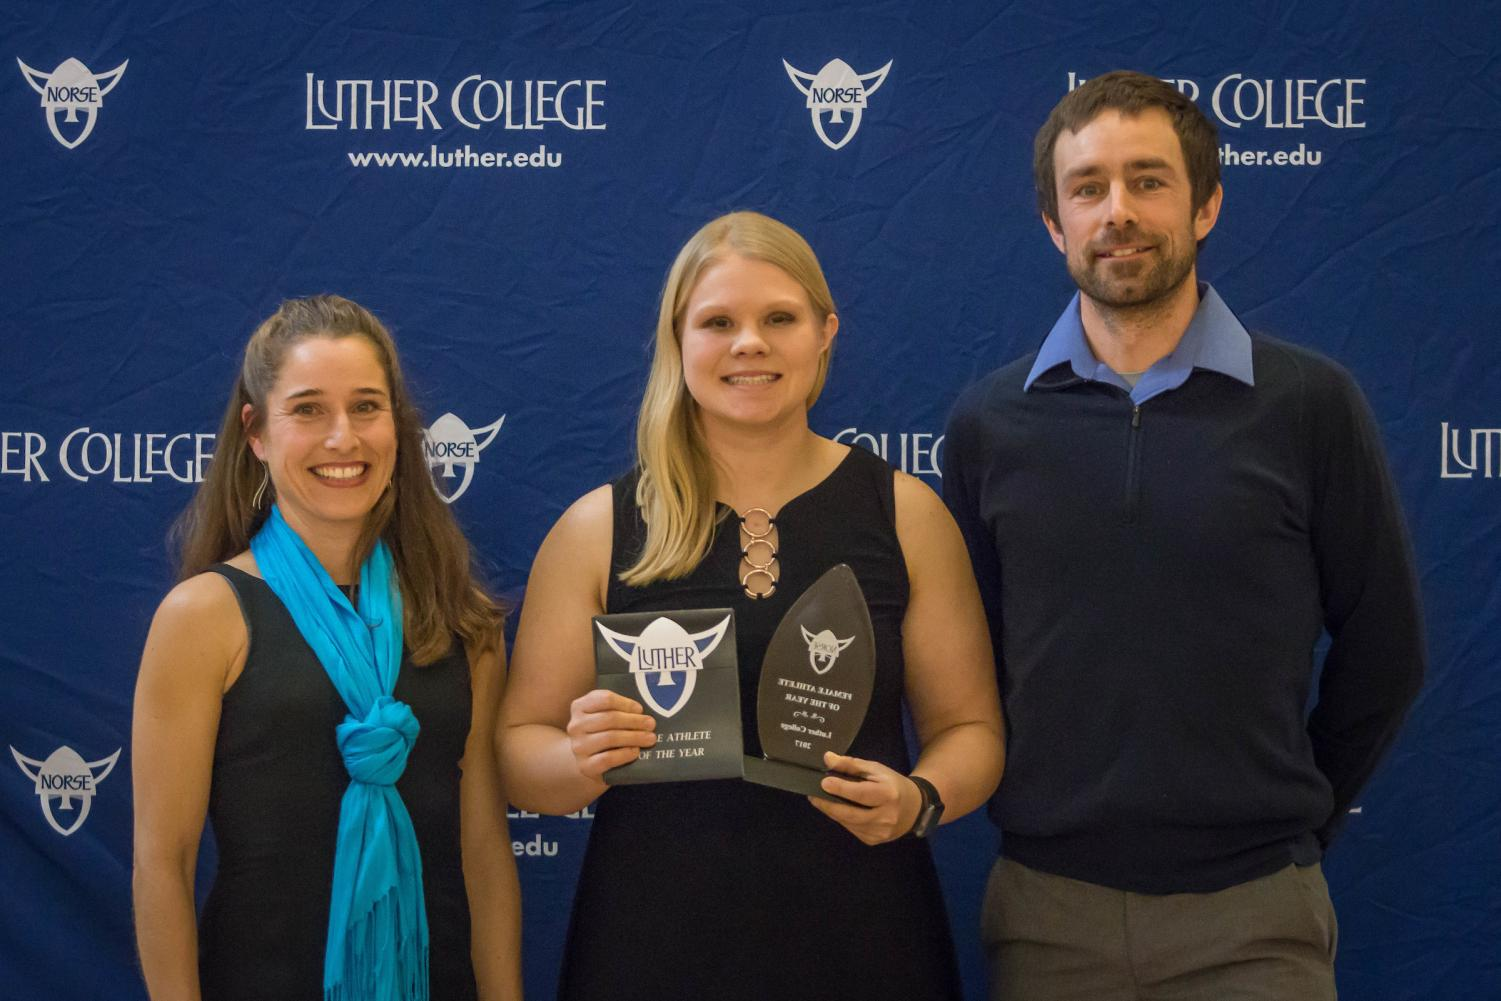 Anna Strien ('18) won 2017 Female Athlete of the year at the 2018 Norse Awards. Steve Pasche and Yarrow Pasche presented the award.